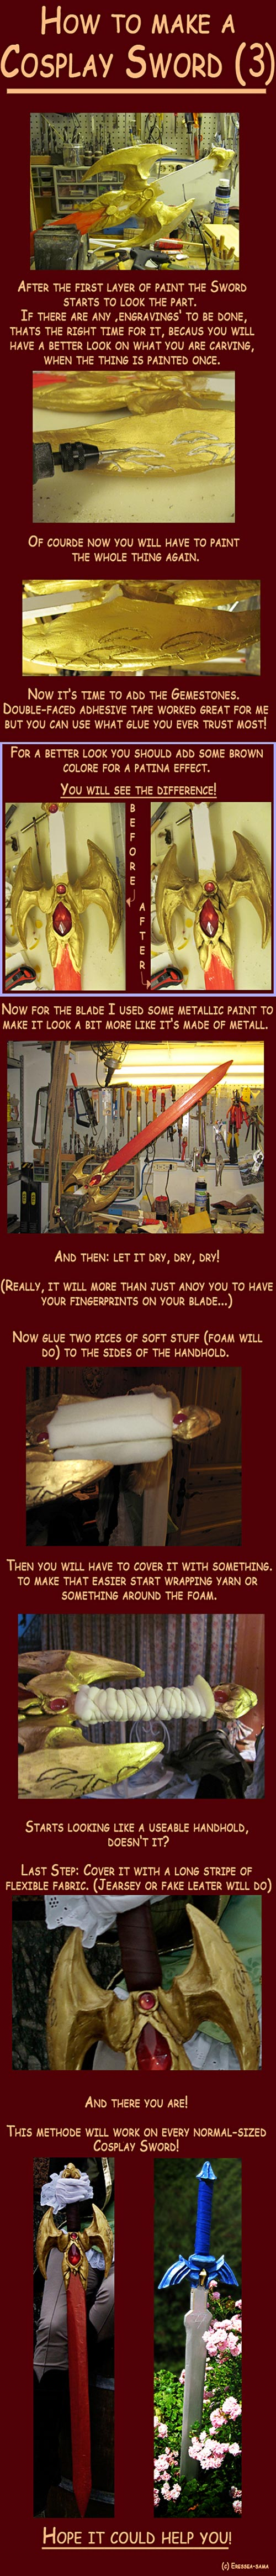 how_to_make_a_cosplay_sword_3_by_eressea_sama-d4g62wu